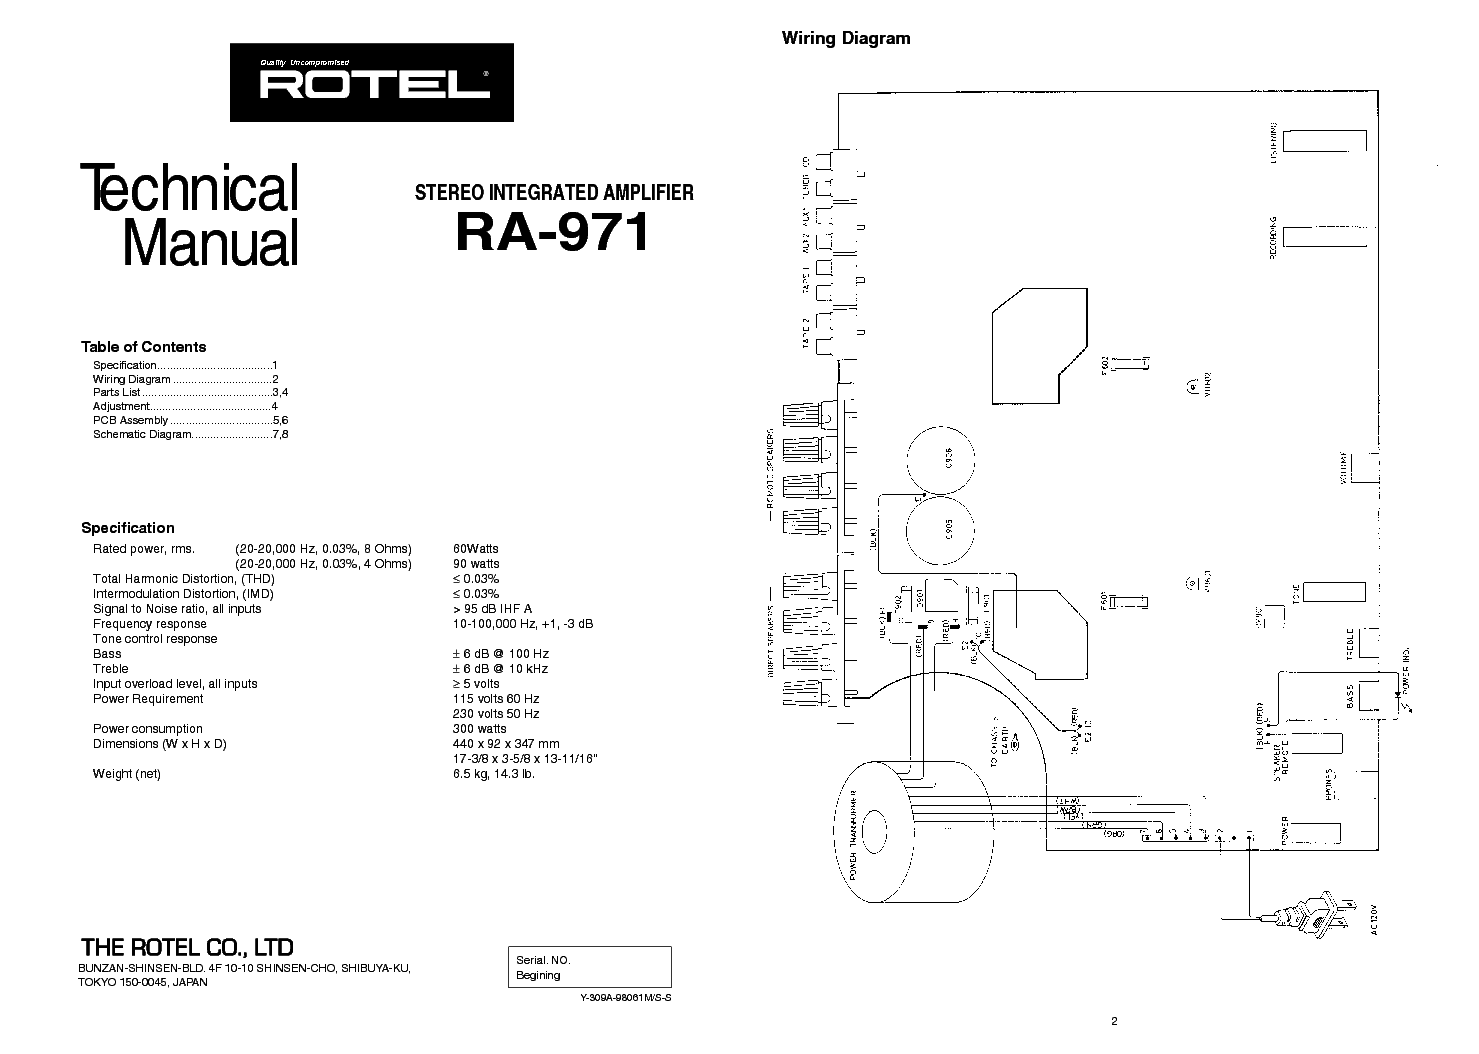 rotel_ra 971_sm.pdf_1 rotel ra 971 sm service manual download, schematics, eeprom read wiring diagrams at fashall.co